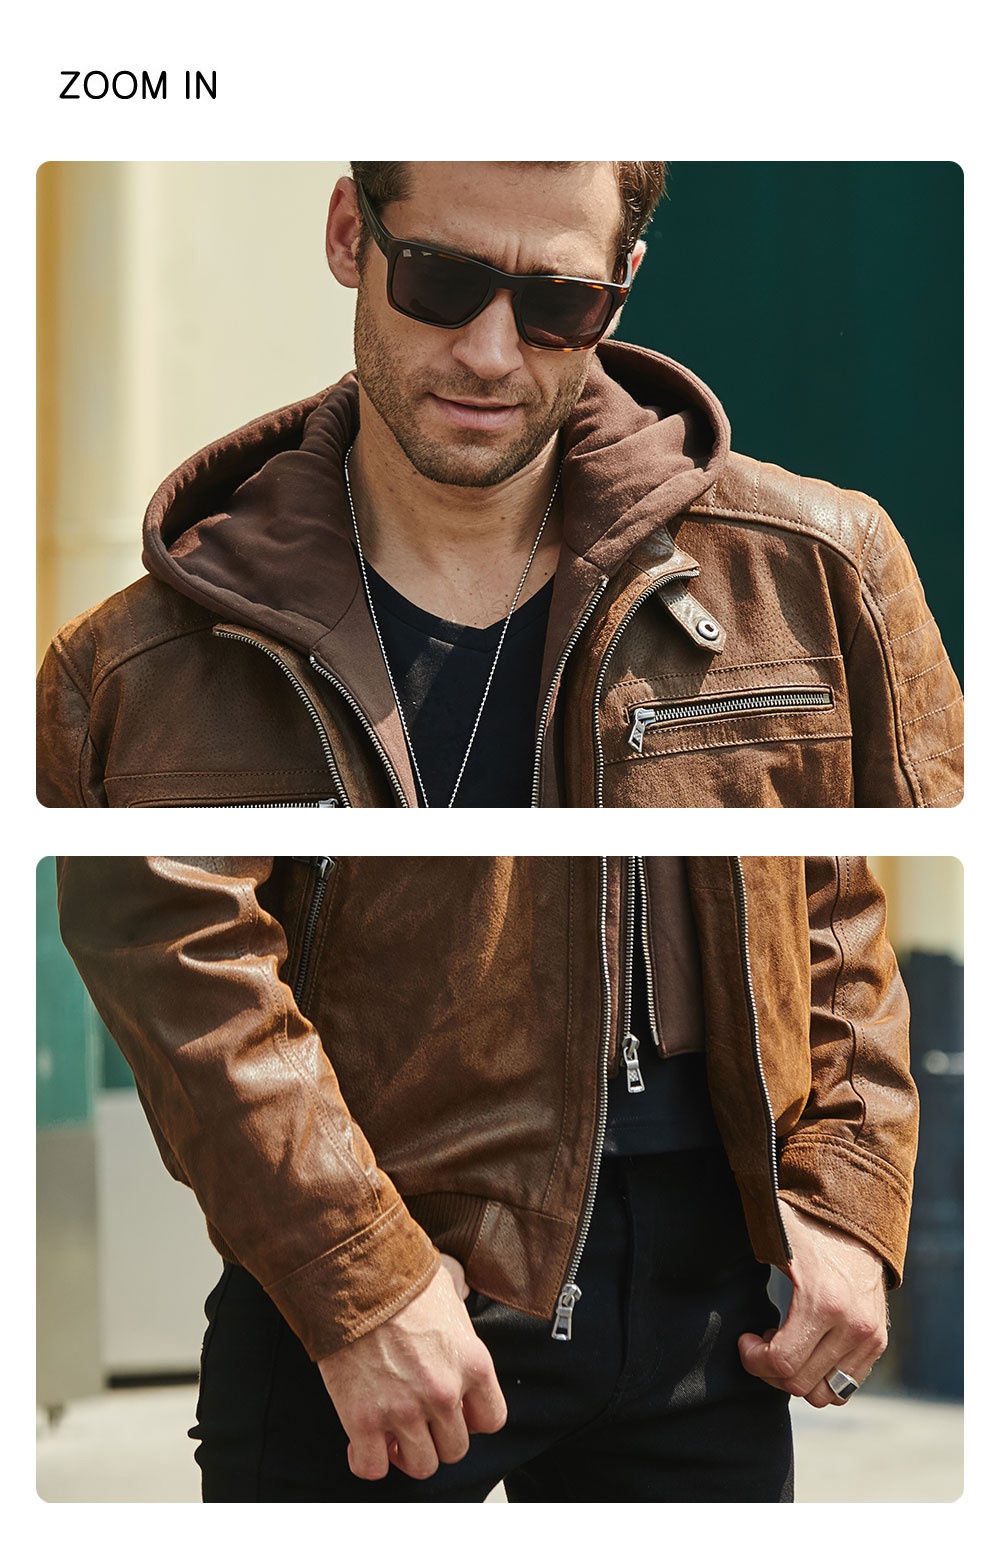 H7b40b959ed5e48eb9706623bd5bbd930l New Men's Leather Jacket, Brown Jacket Made Of Genuine Leather With A Removable Hood, Warm Leather Jacket For Men For The Winter